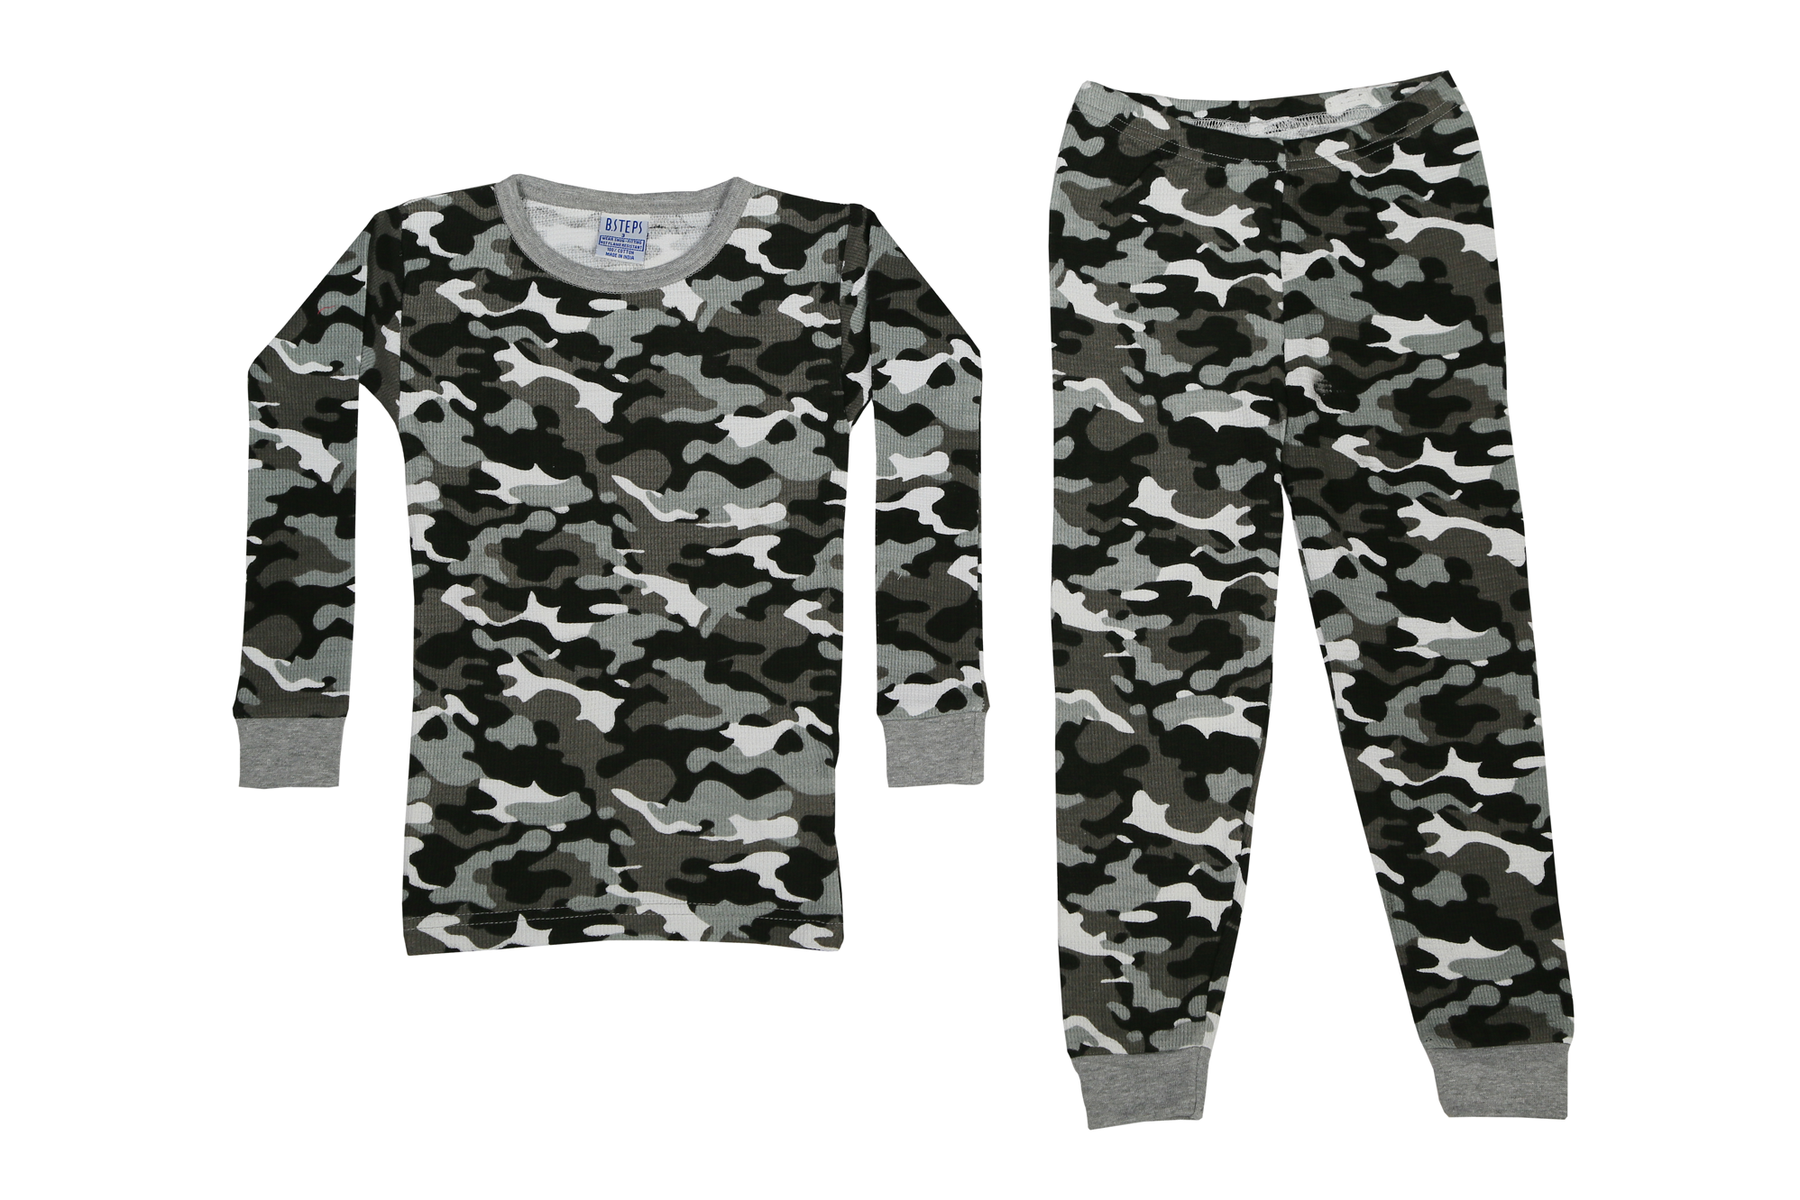 Thermal Pajamas - Black Camo